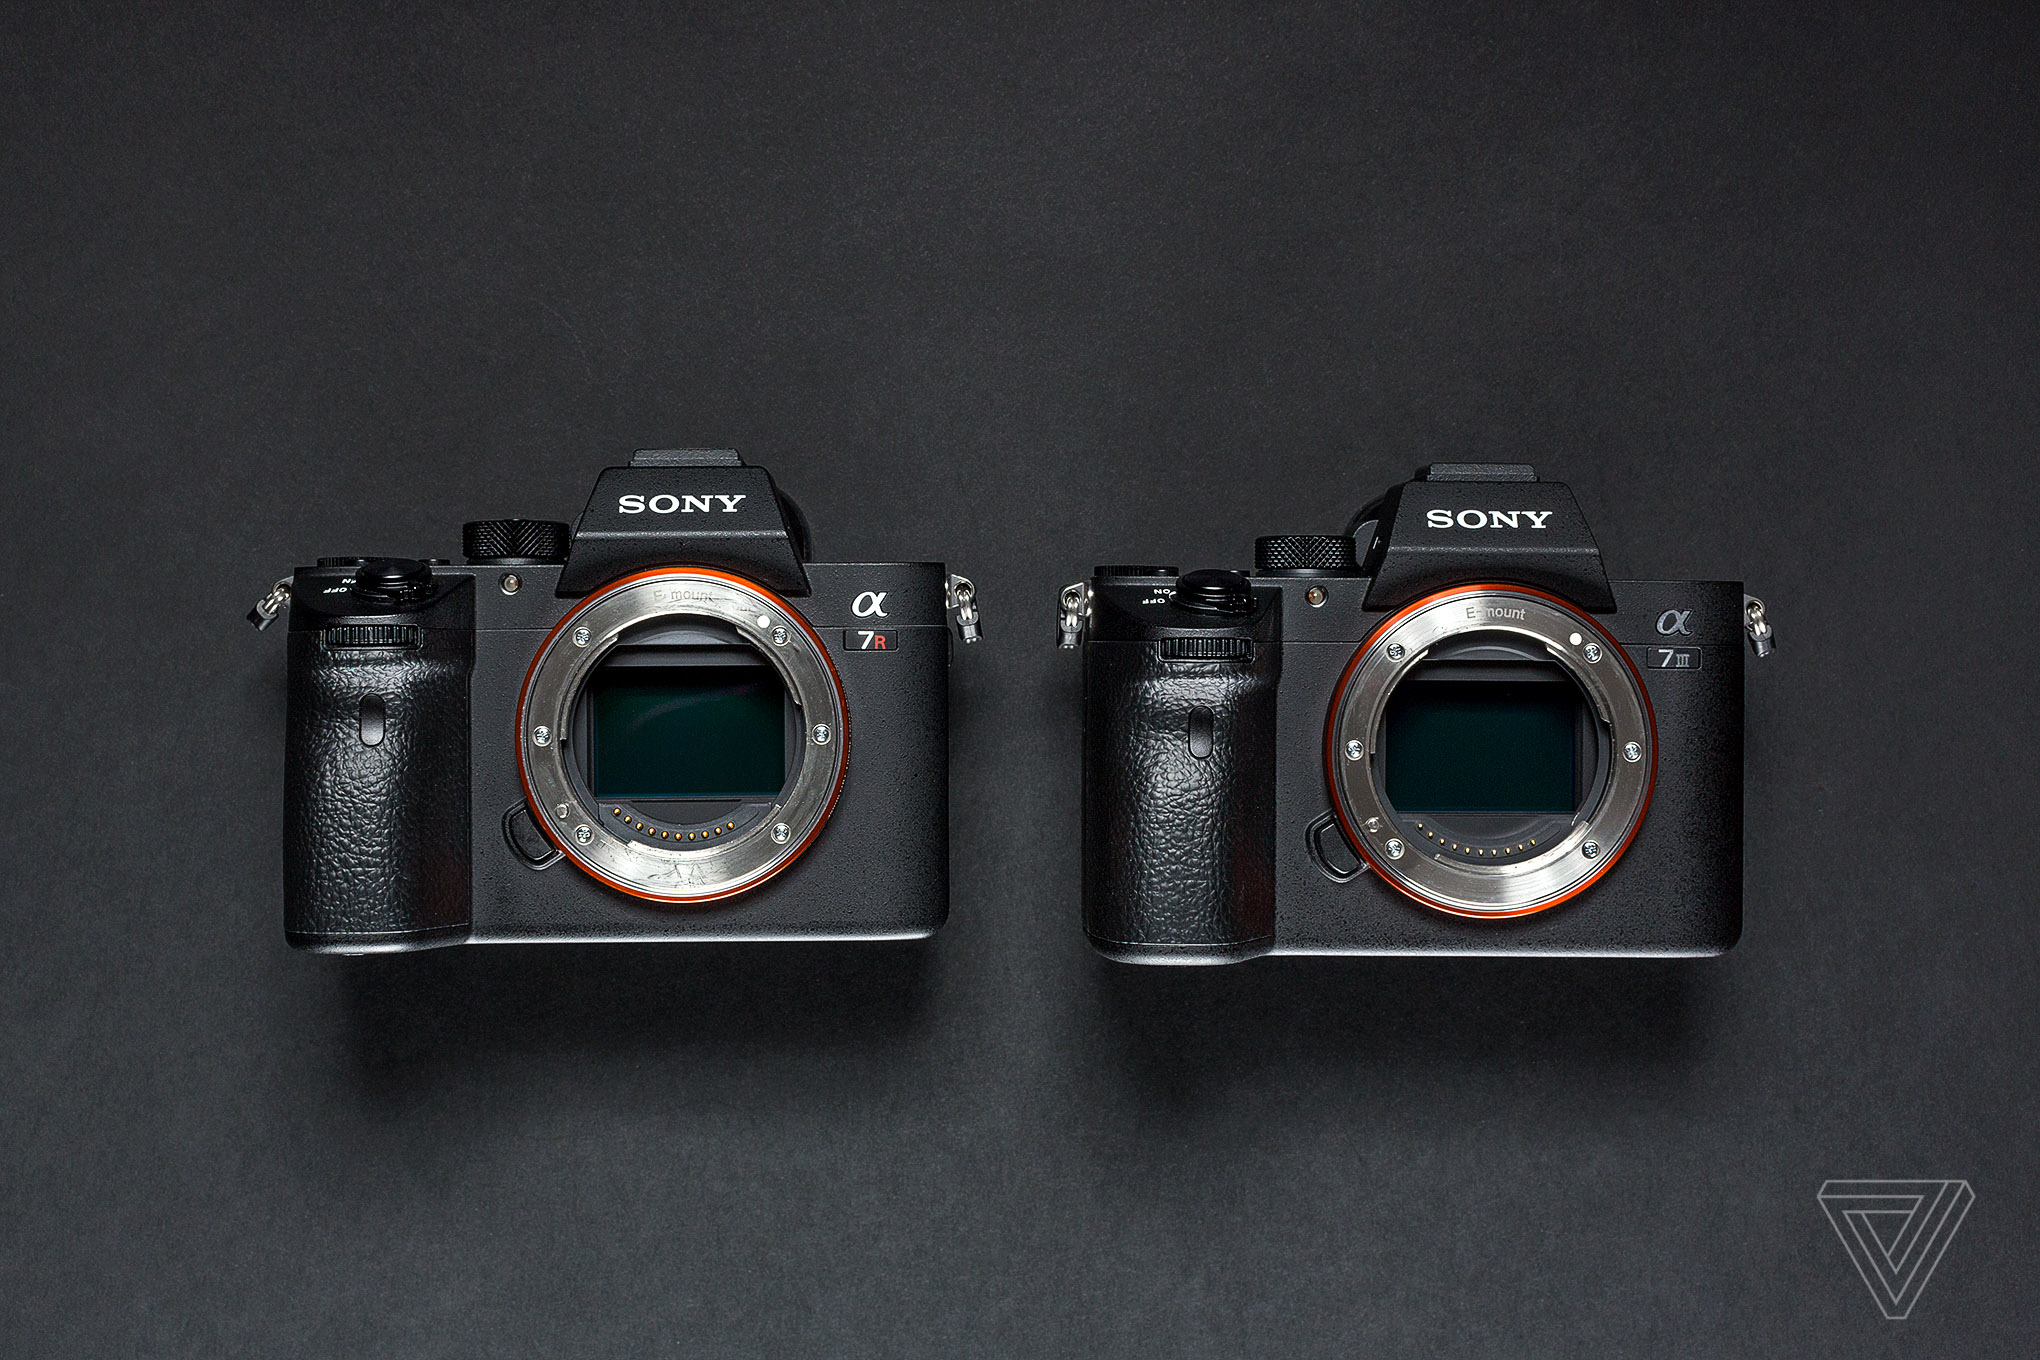 Difference Between Sony Alpha A7 and A7R